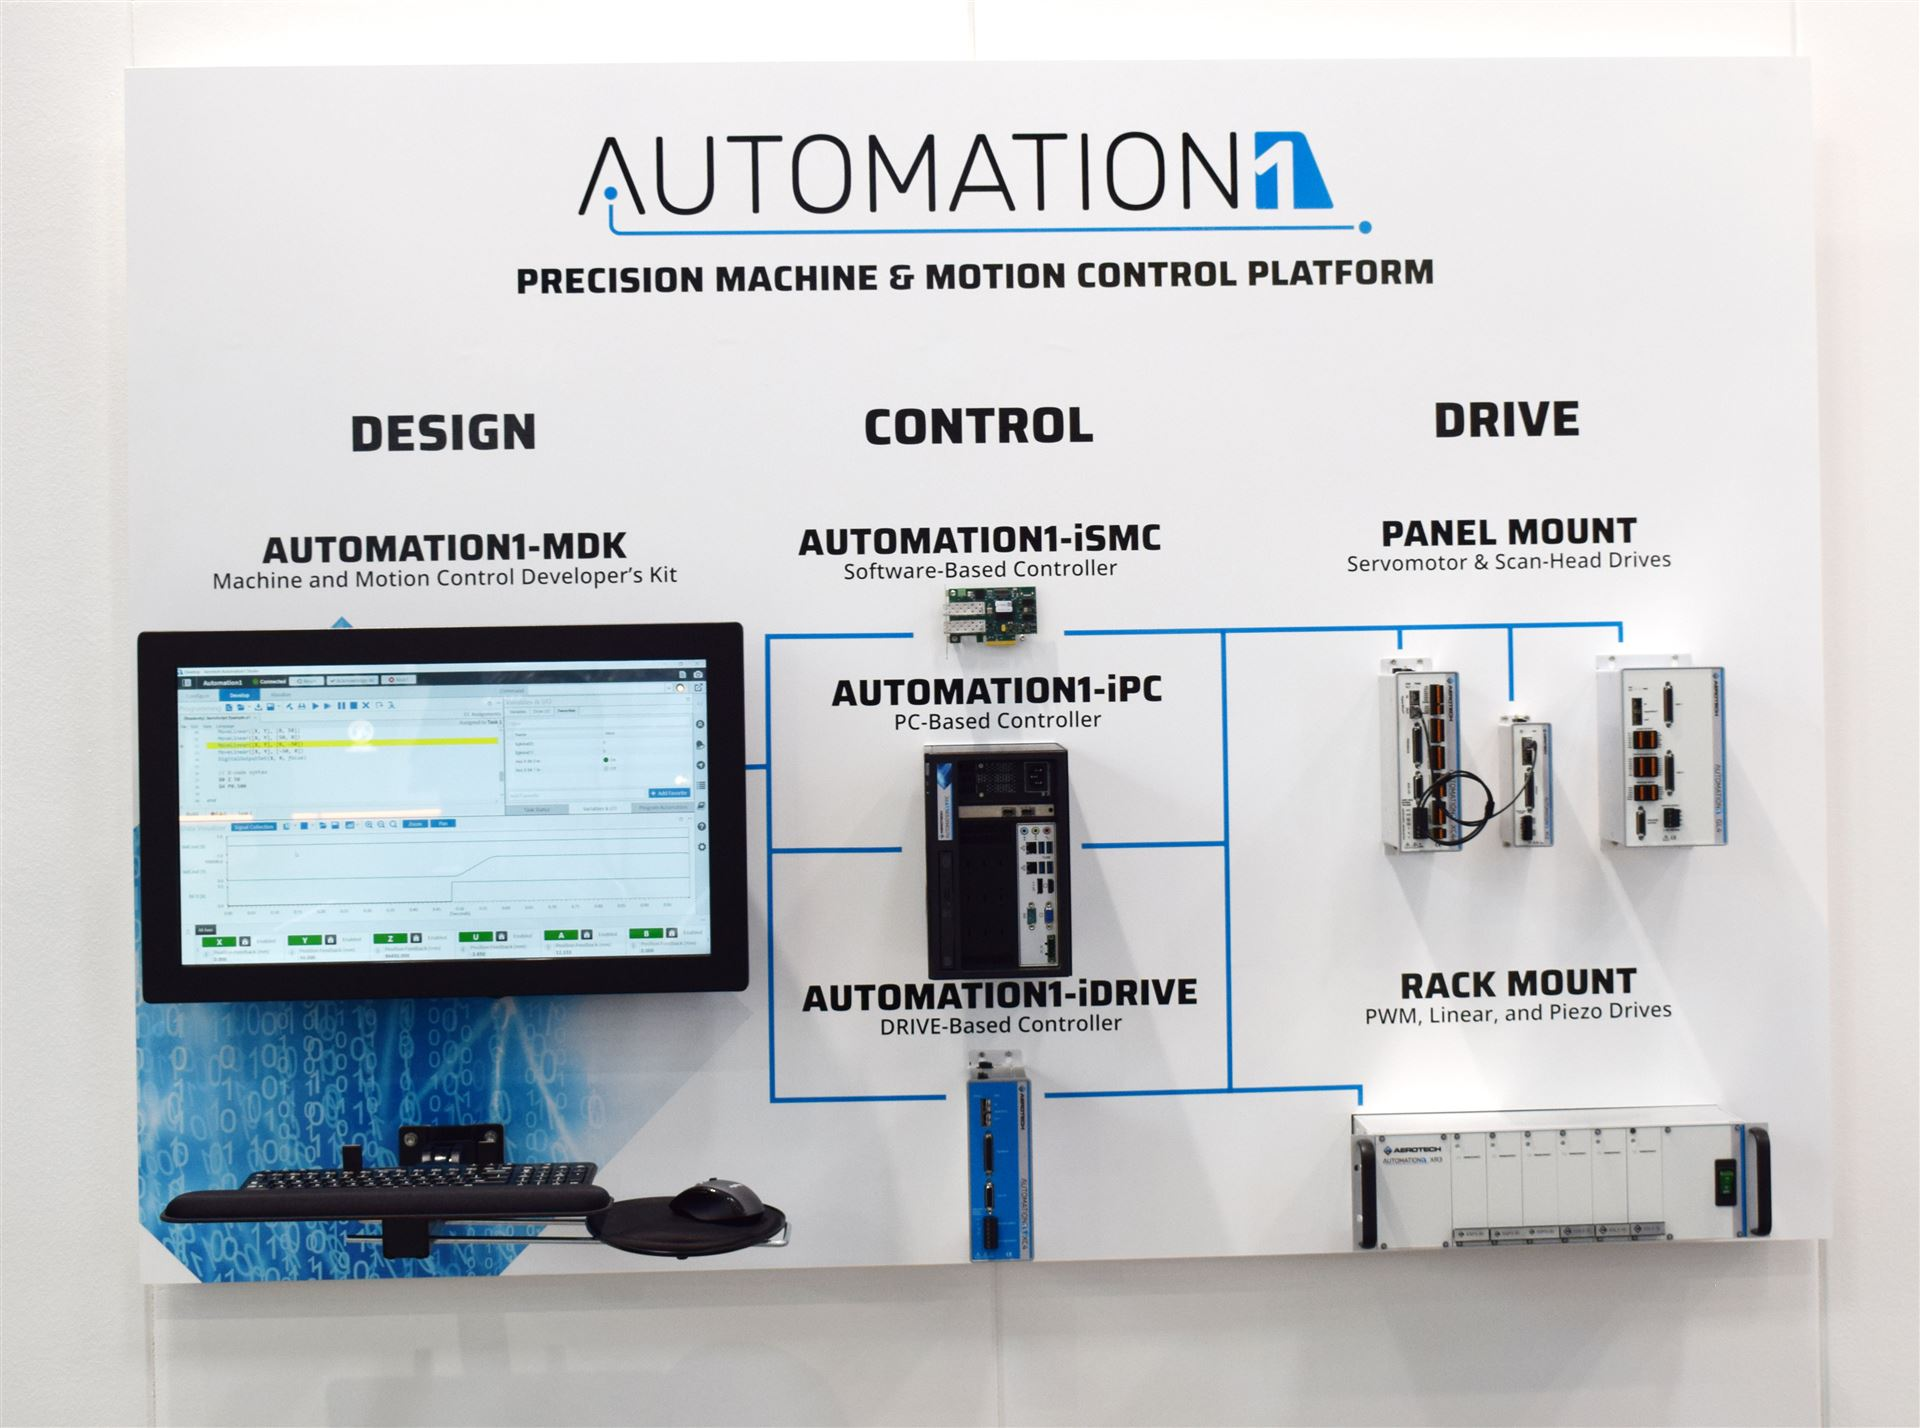 The Automation1 hardware has a built-in digital and analogue I/O